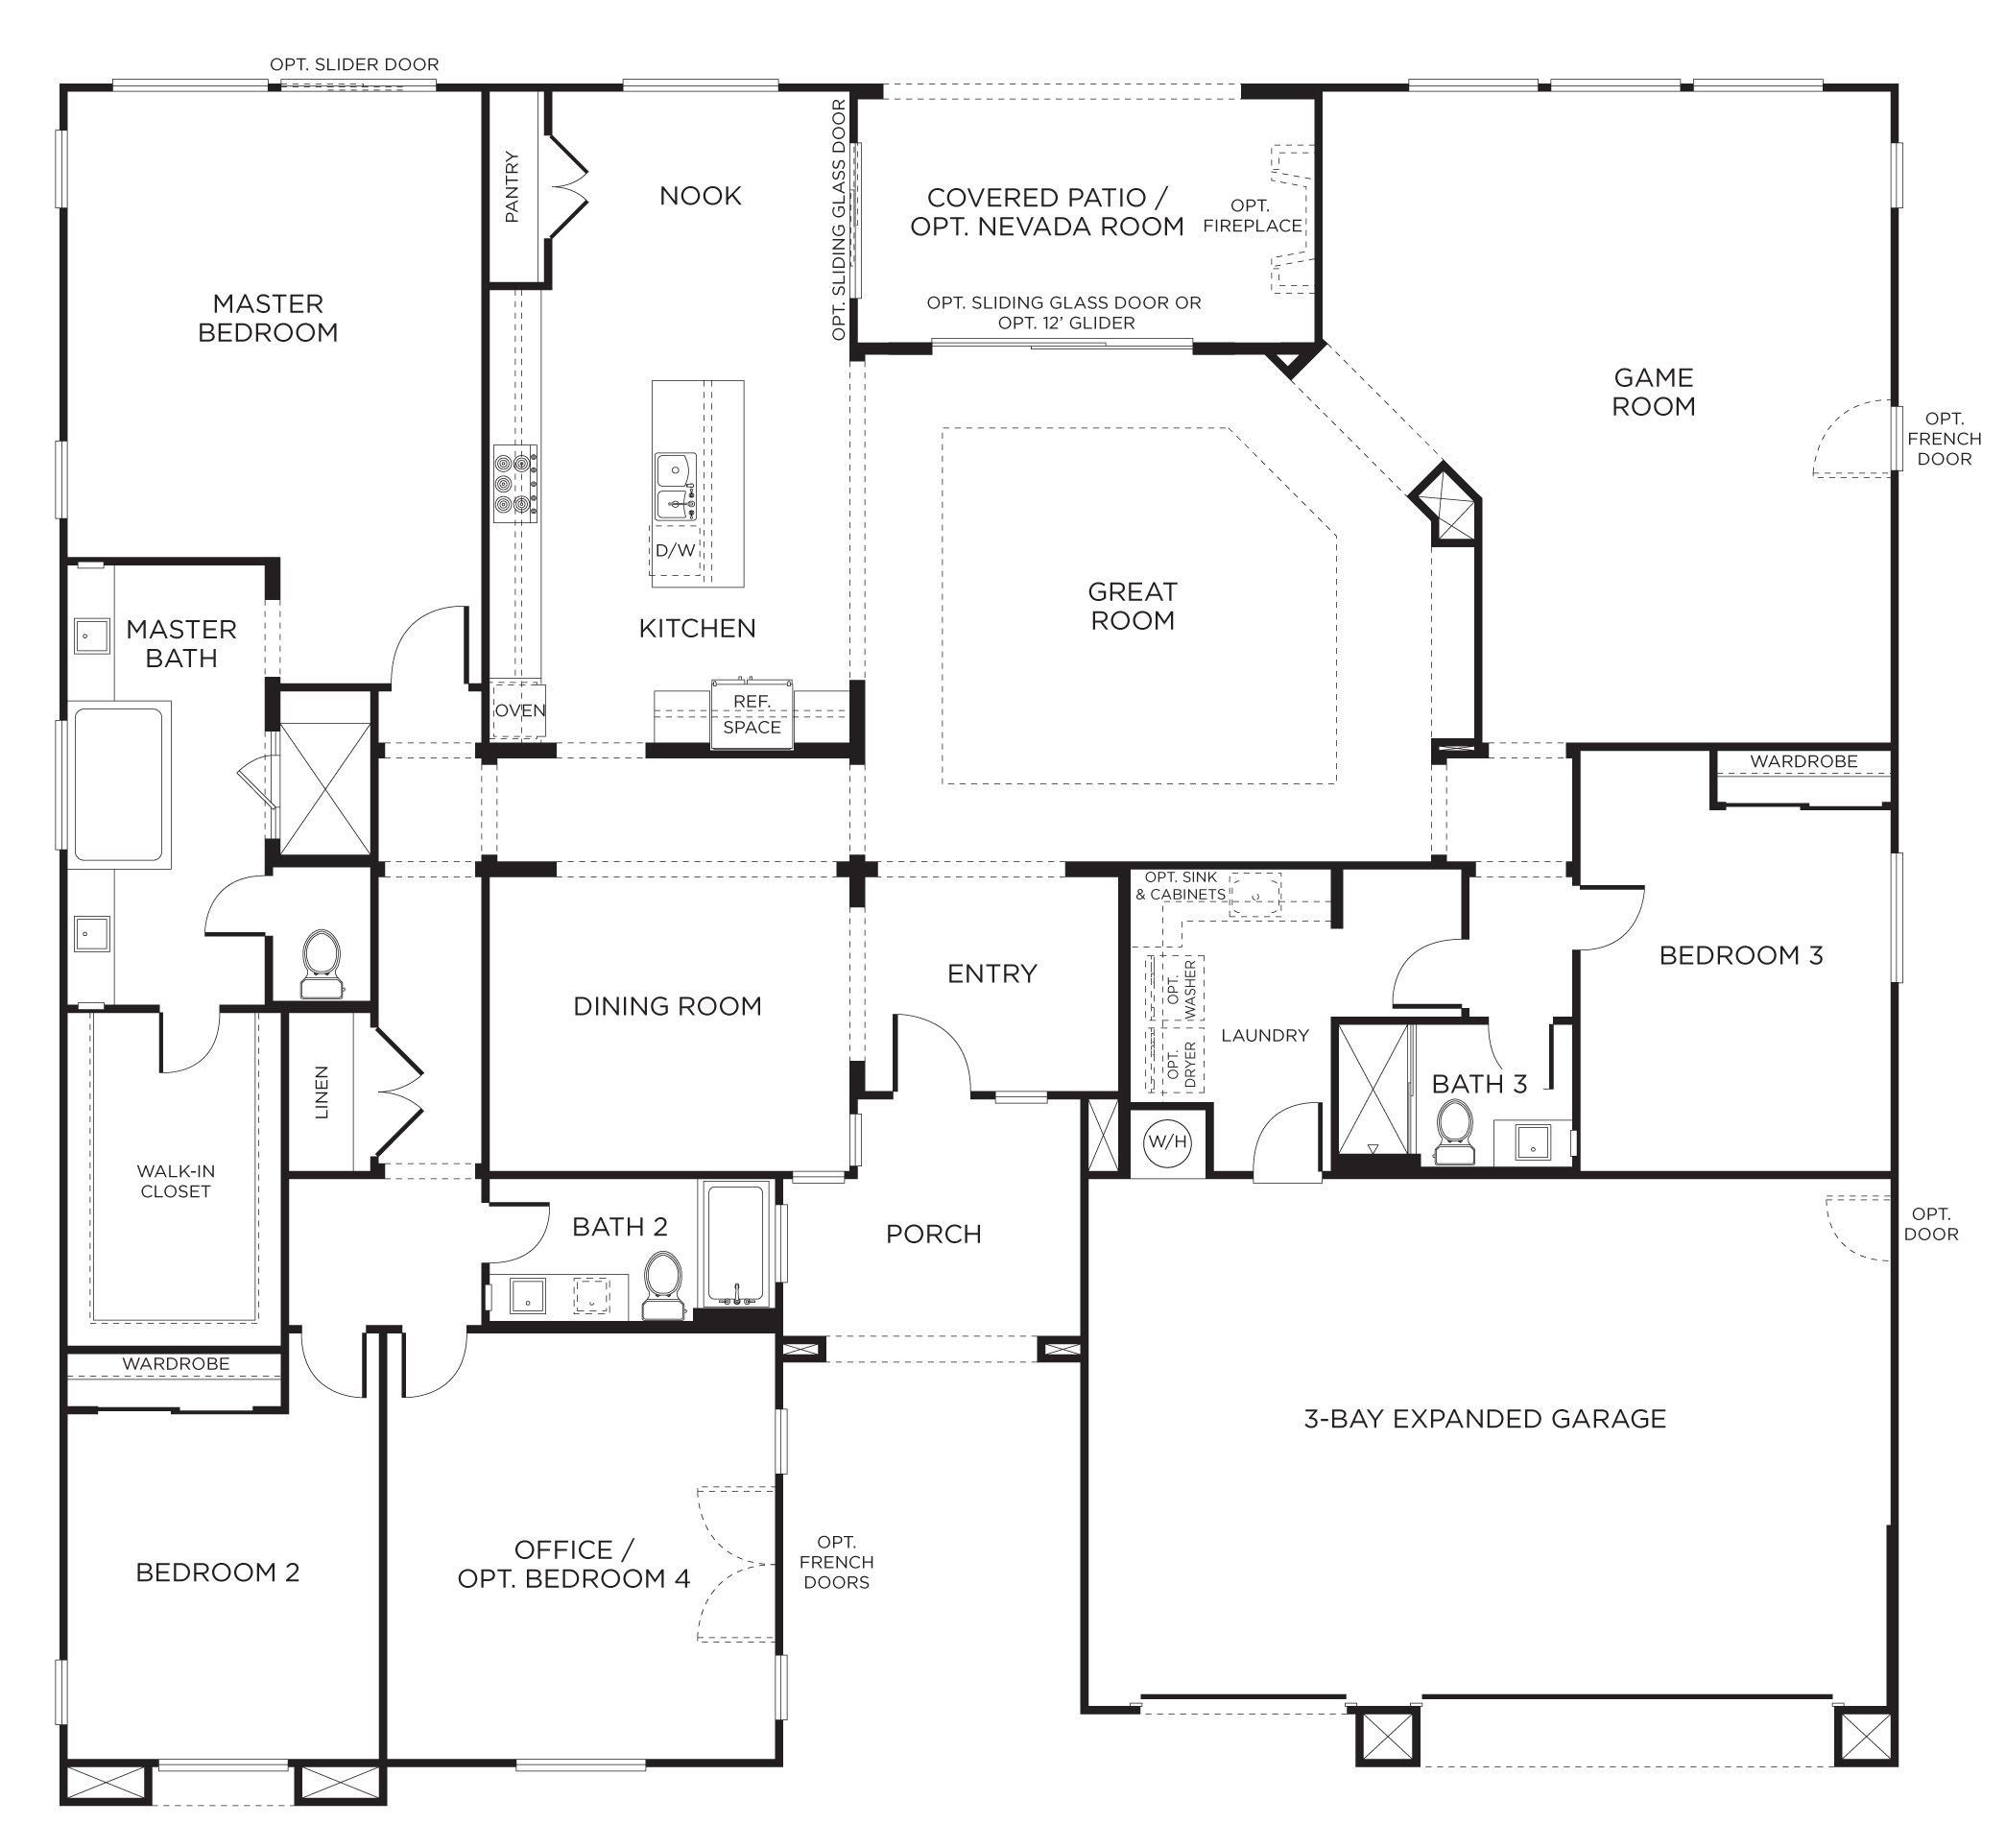 Floorplan 2 3 4 bedrooms 3 bathrooms 3400 square feet for Single story 4 bedroom modern house plans